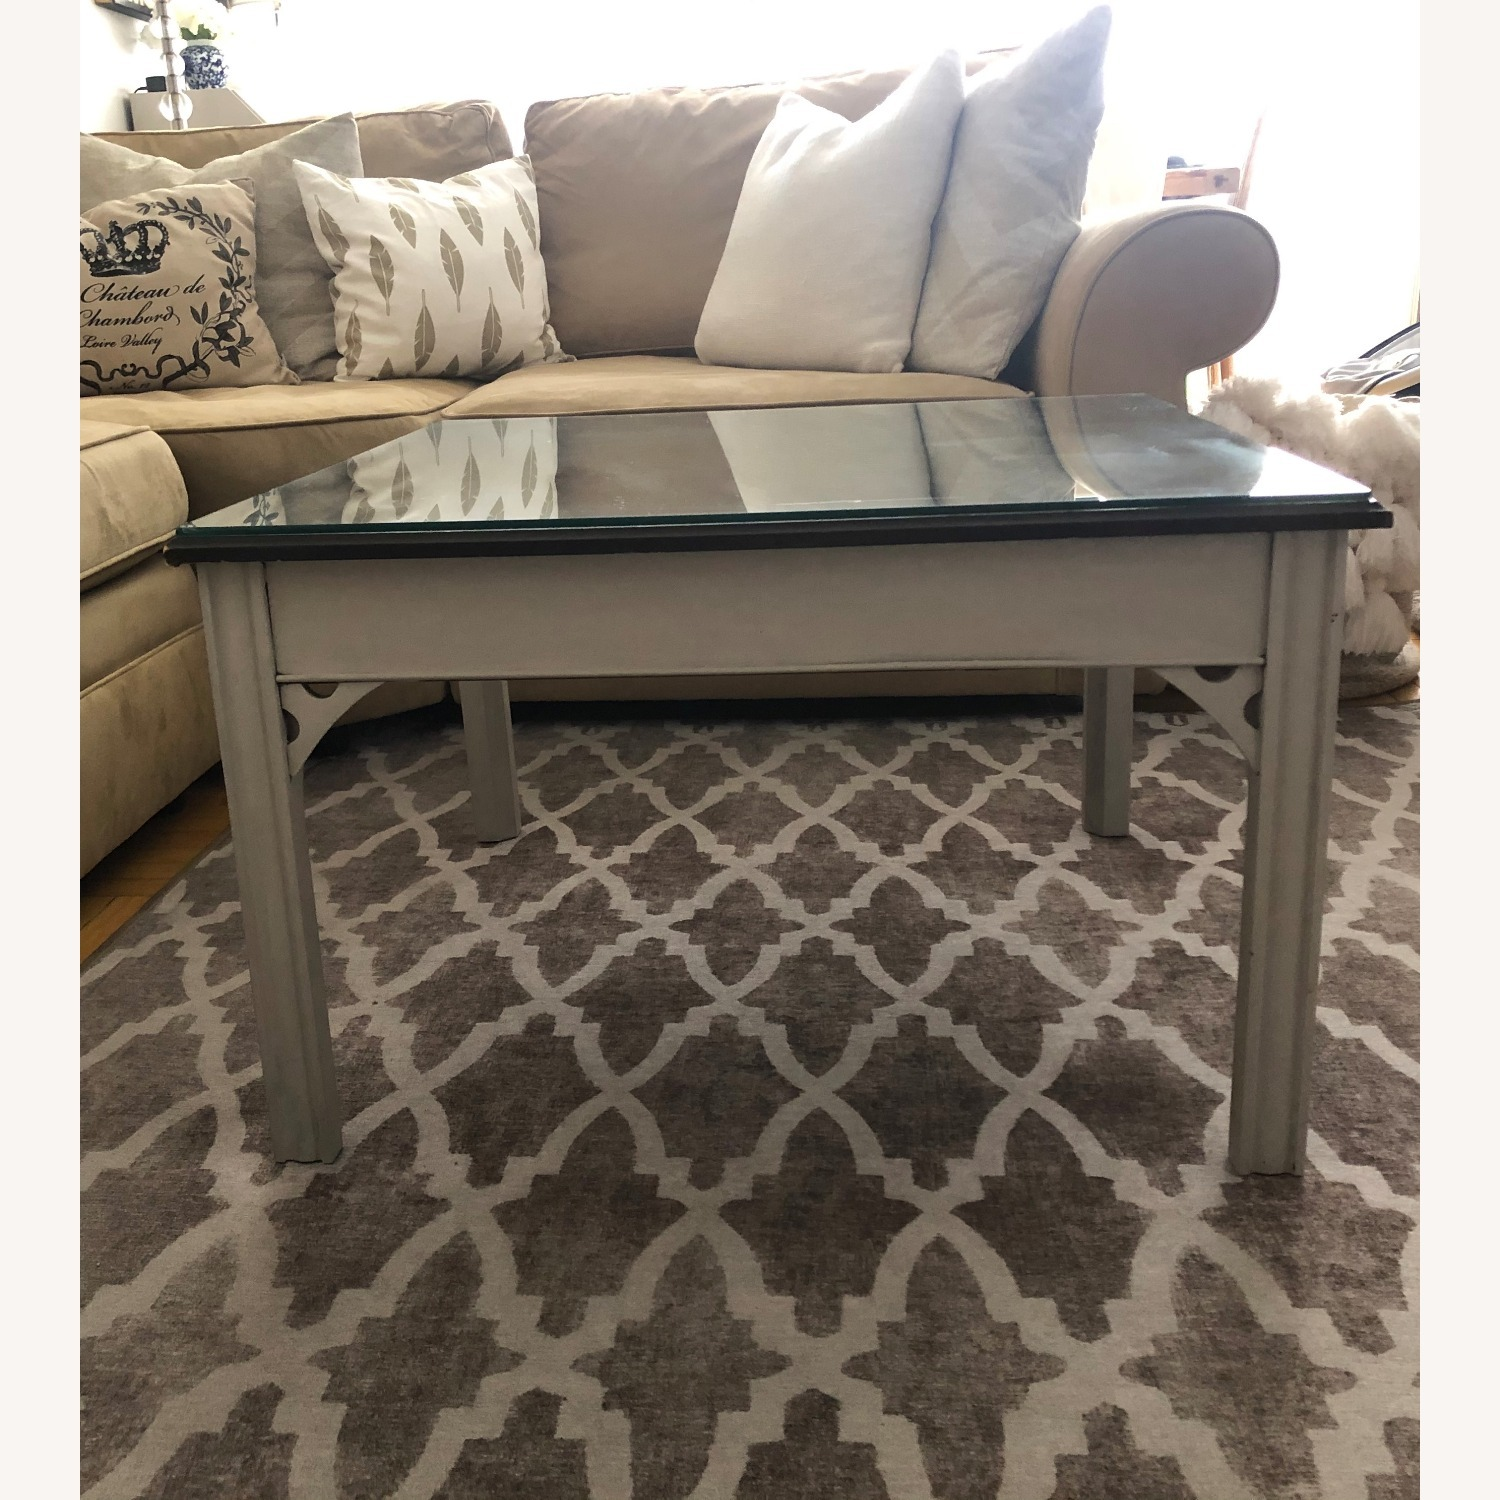 Antique Square Coffee Table - image-2